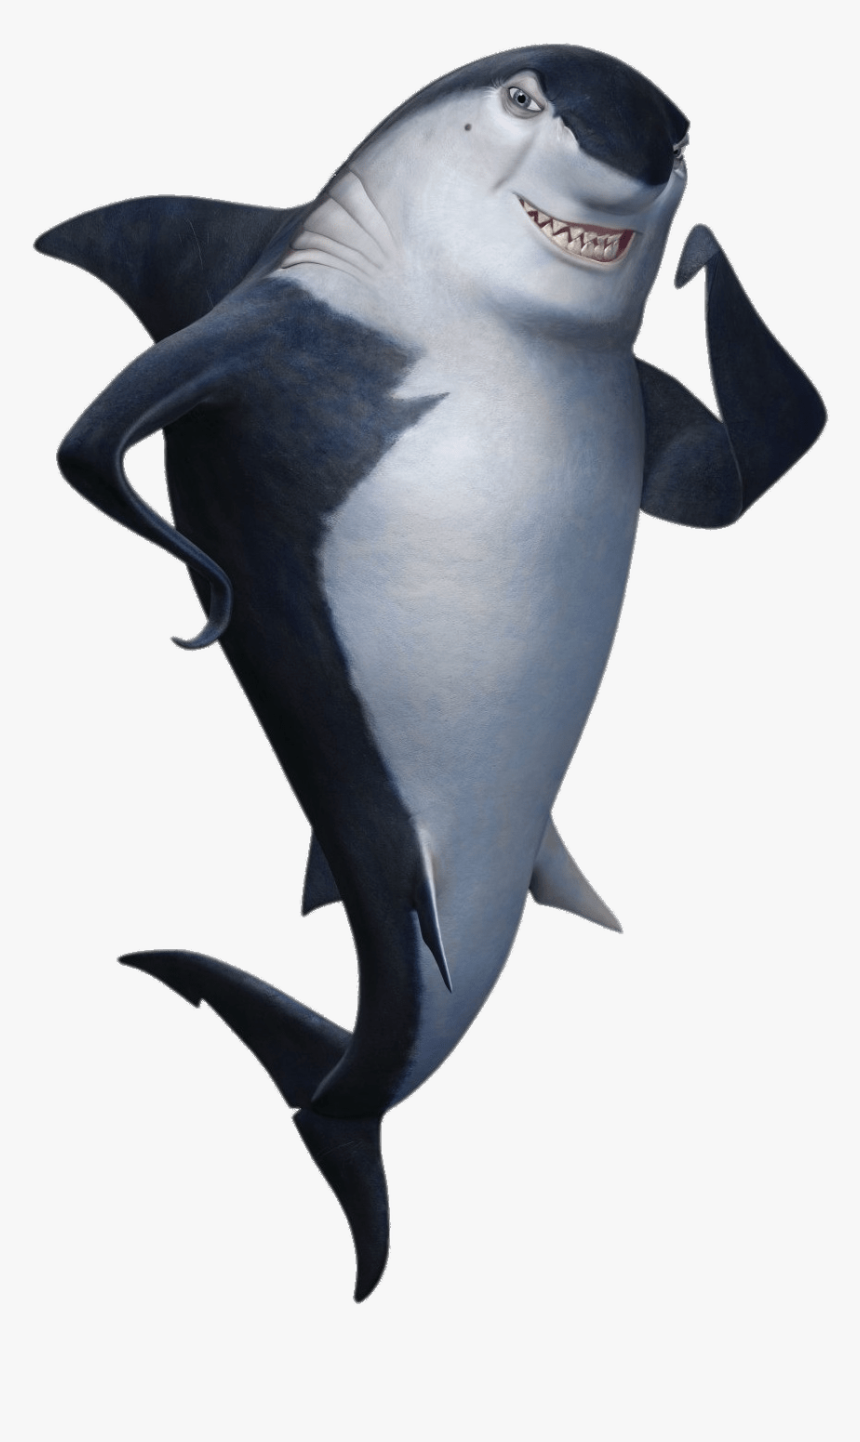 Shark Tale Character Don Lino The Shark - Shark From Shark Tail, HD Png Download, Free Download